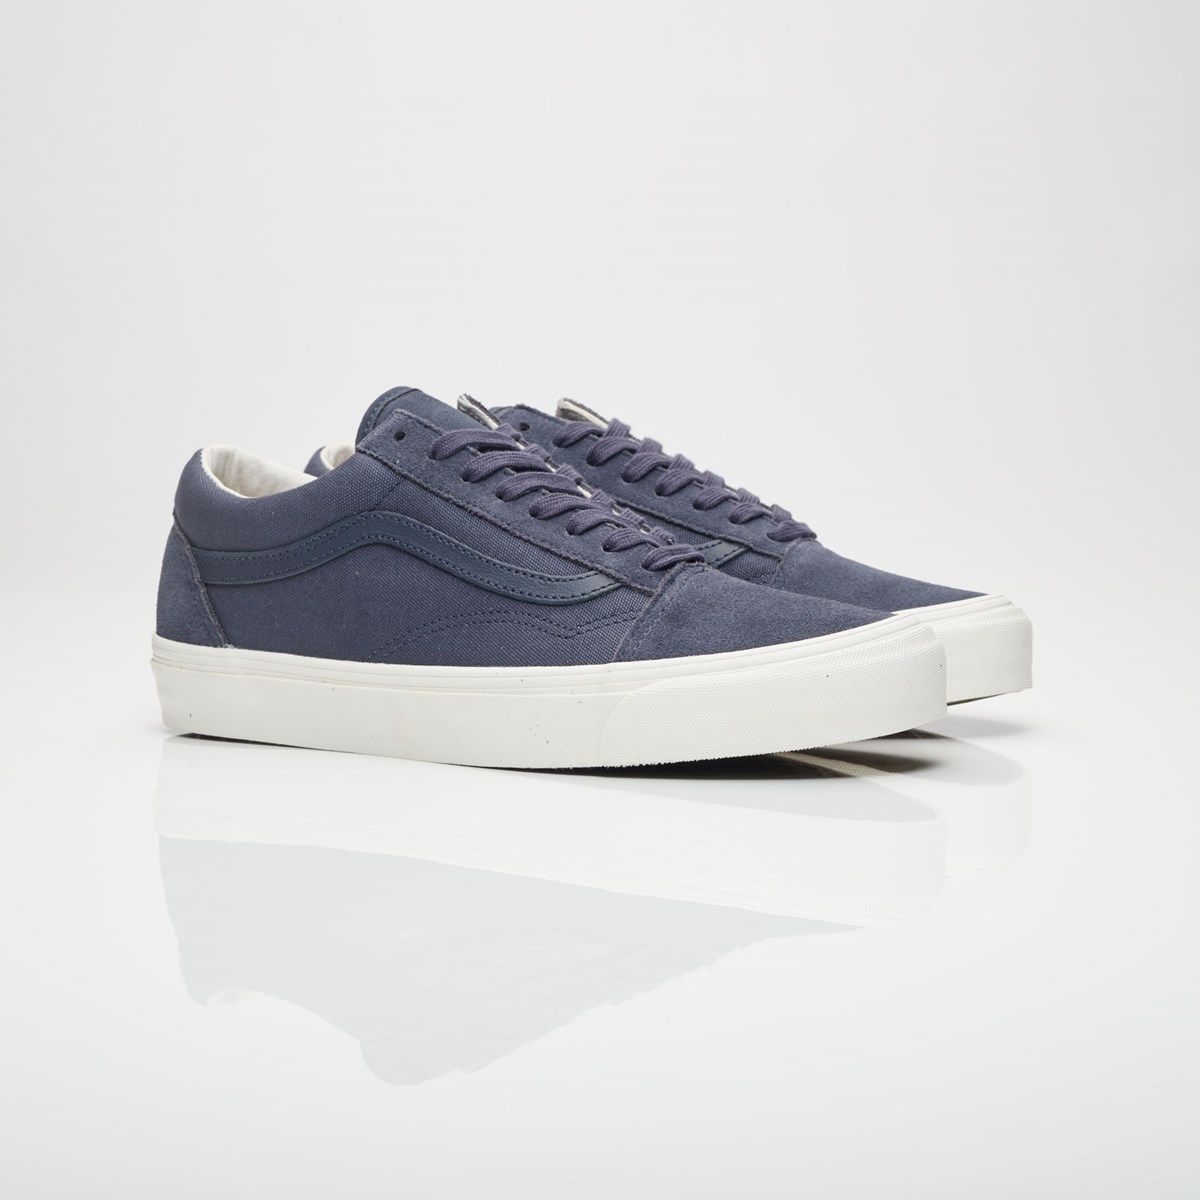 outlet store 7ded4 0edc6 This Vans Vault Old Skool features a Parisian Night blue heavy canvas on  the upper providing